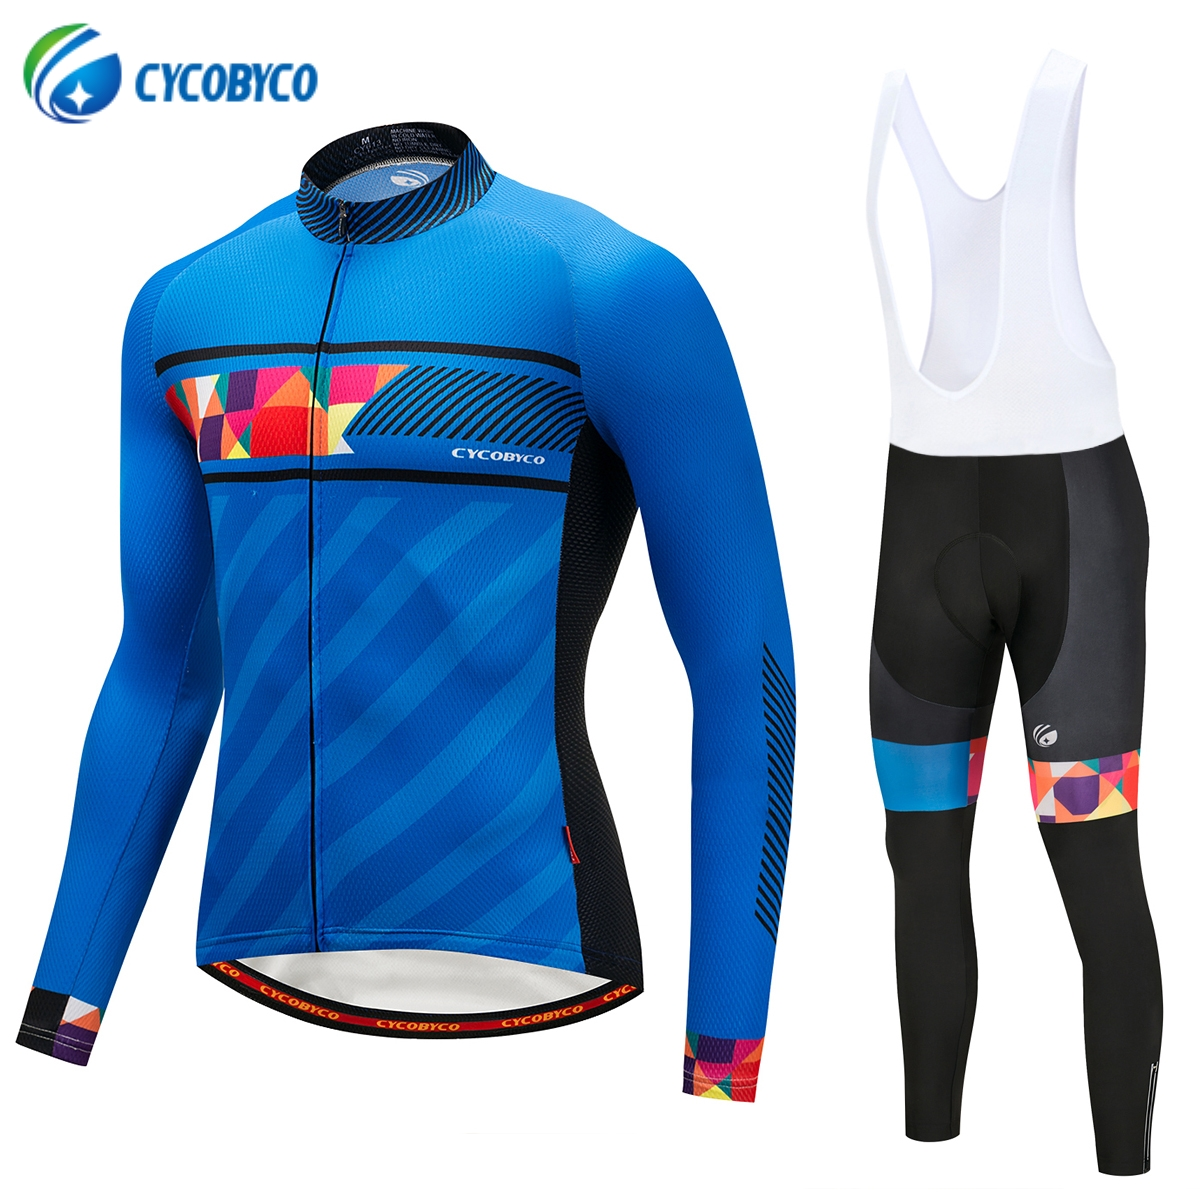 Cycobyco Autumn Cycling Jersey Set Long Sleeve MTB Bike Wear Clothes Breathable Bicycle Clothing Ropa Maillot